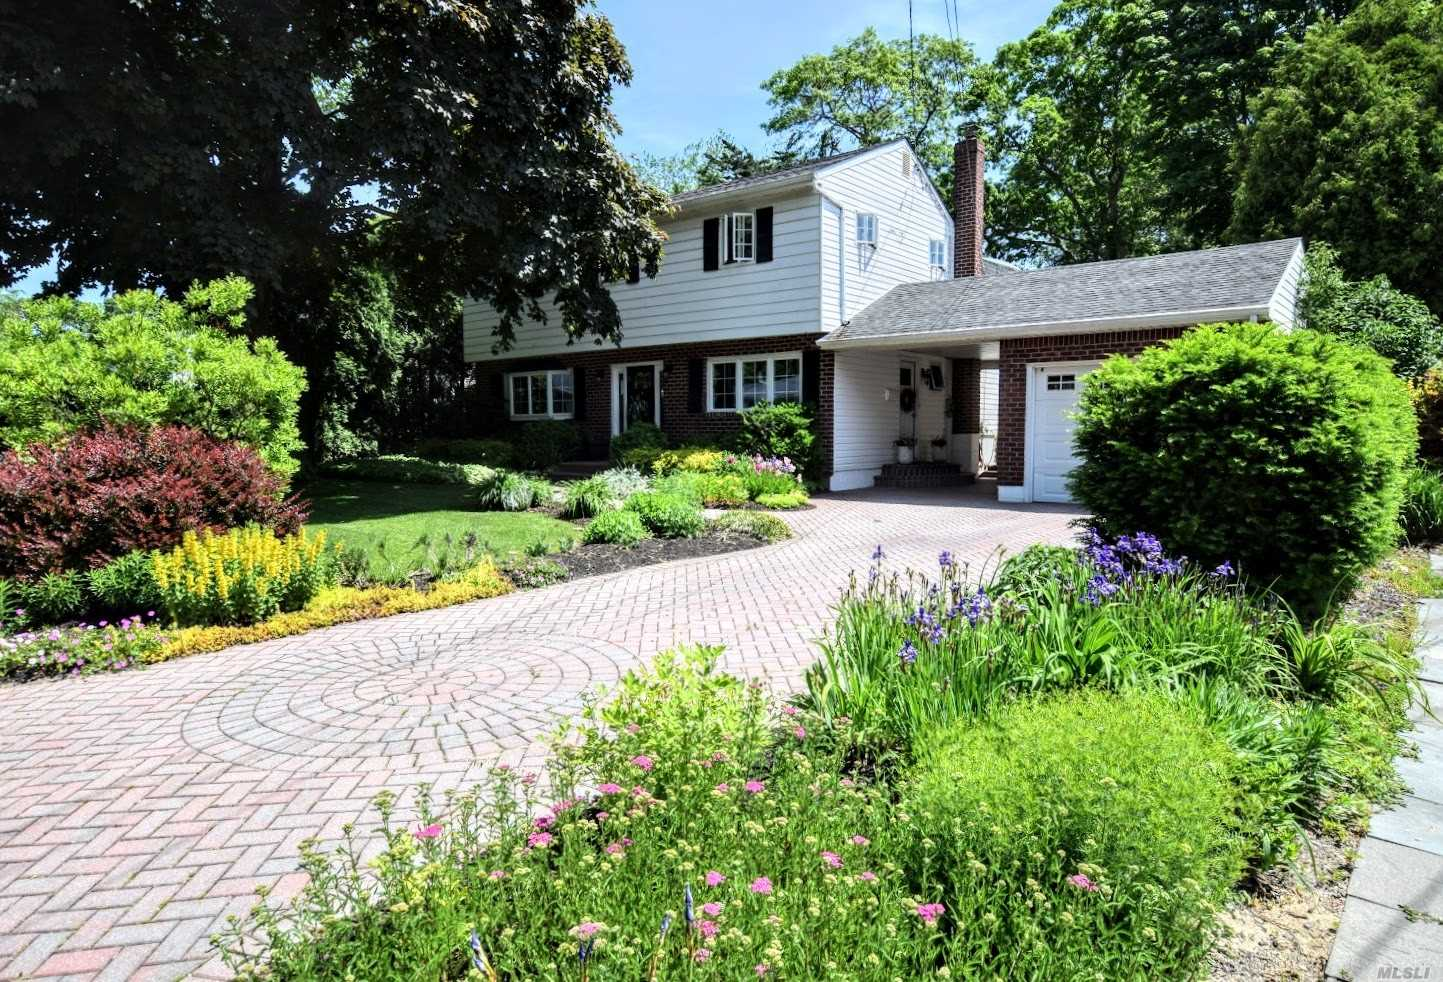 Photo of home for sale at 27 Bieselin Rd, Bellport Village NY